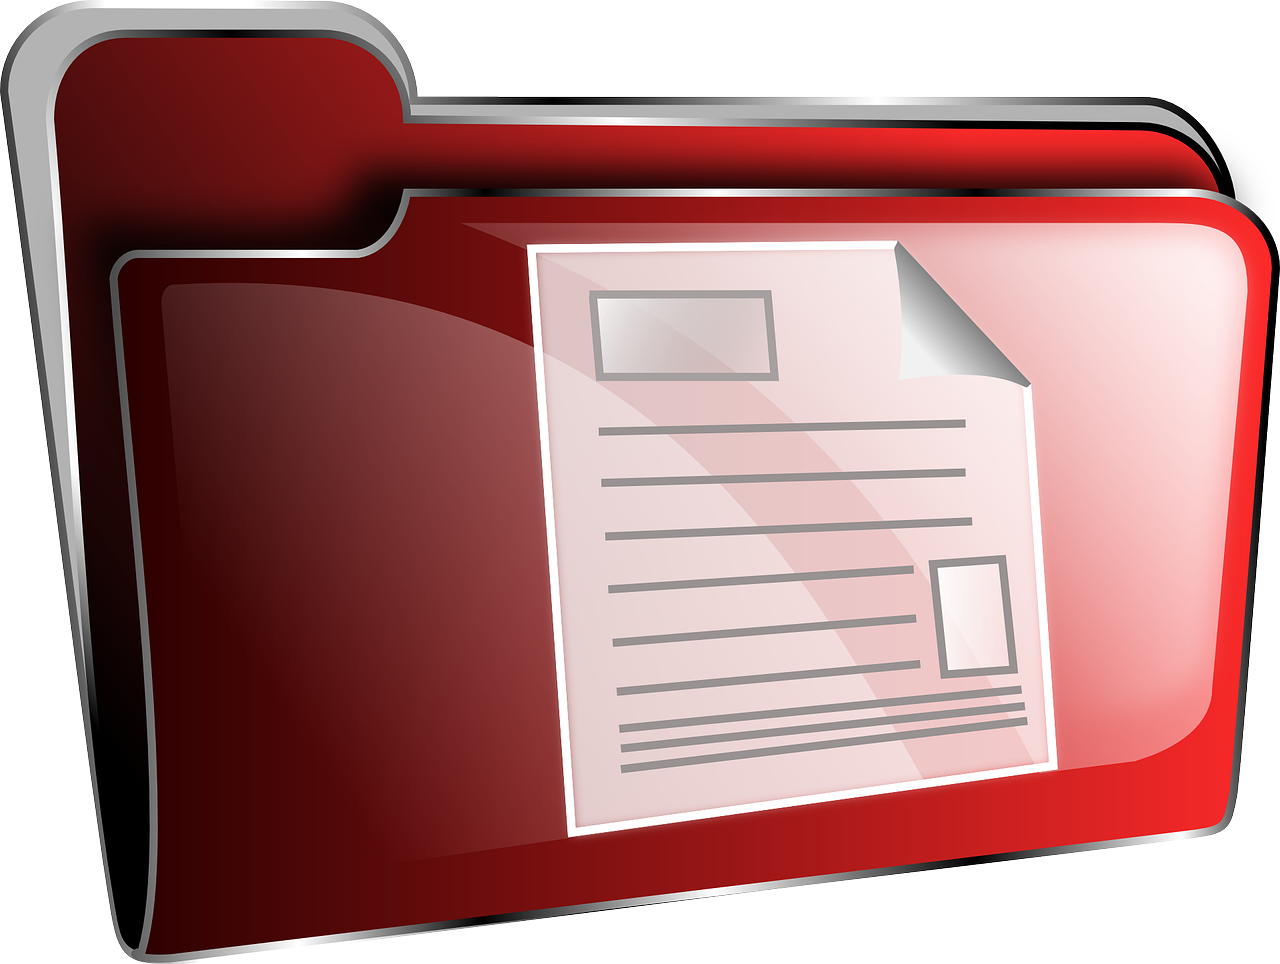 How to create, save and open an existing document.